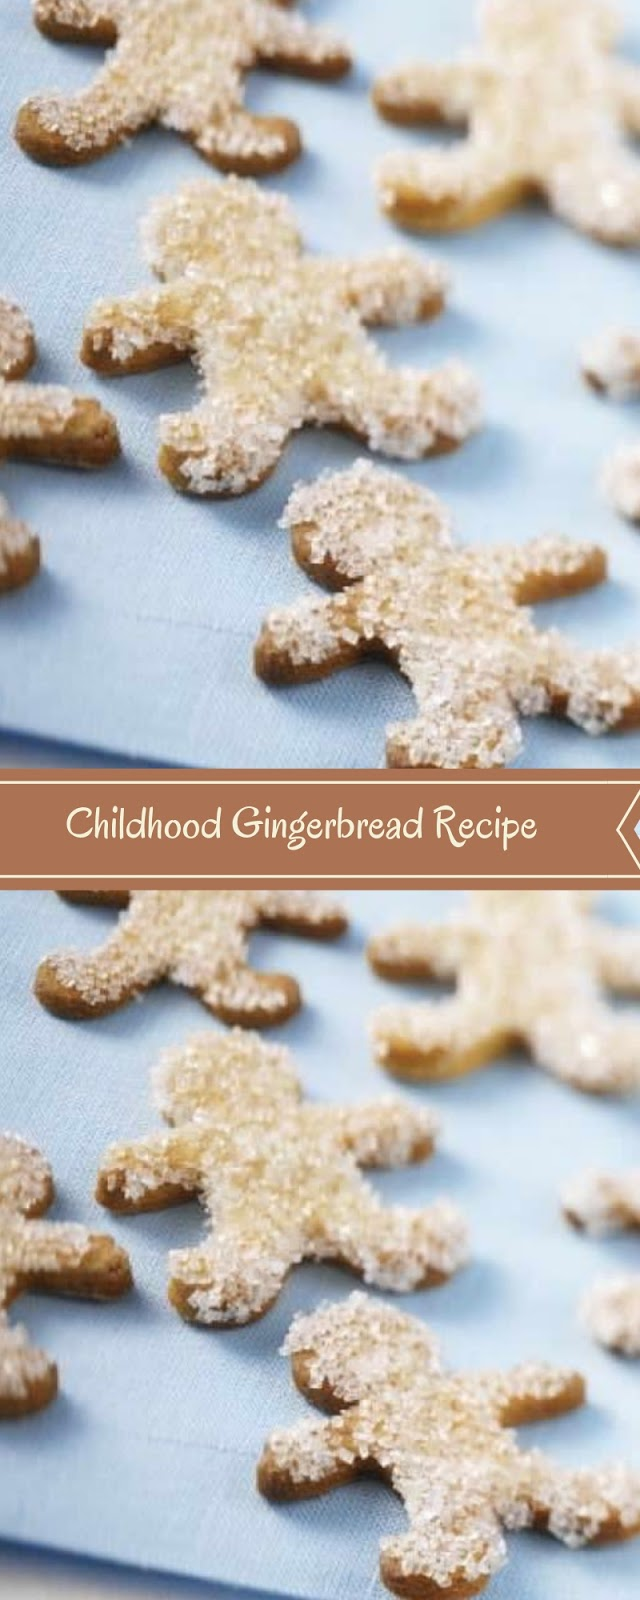 Childhood Gingerbread Recipe